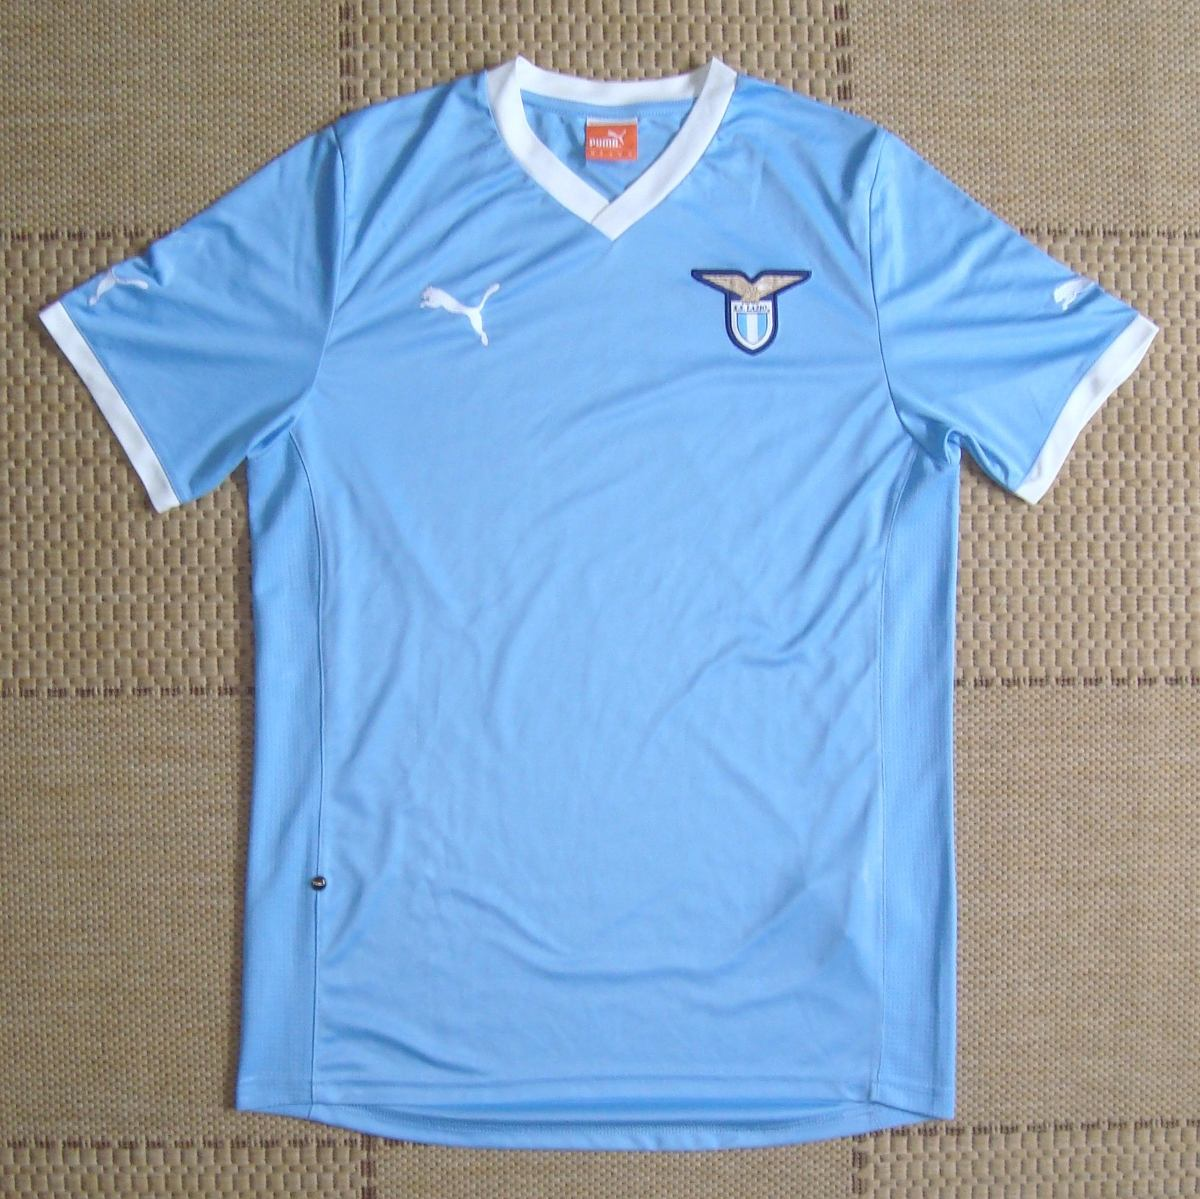 9555b1c902 camisa original lazio 2011 2012 home. Carregando zoom.